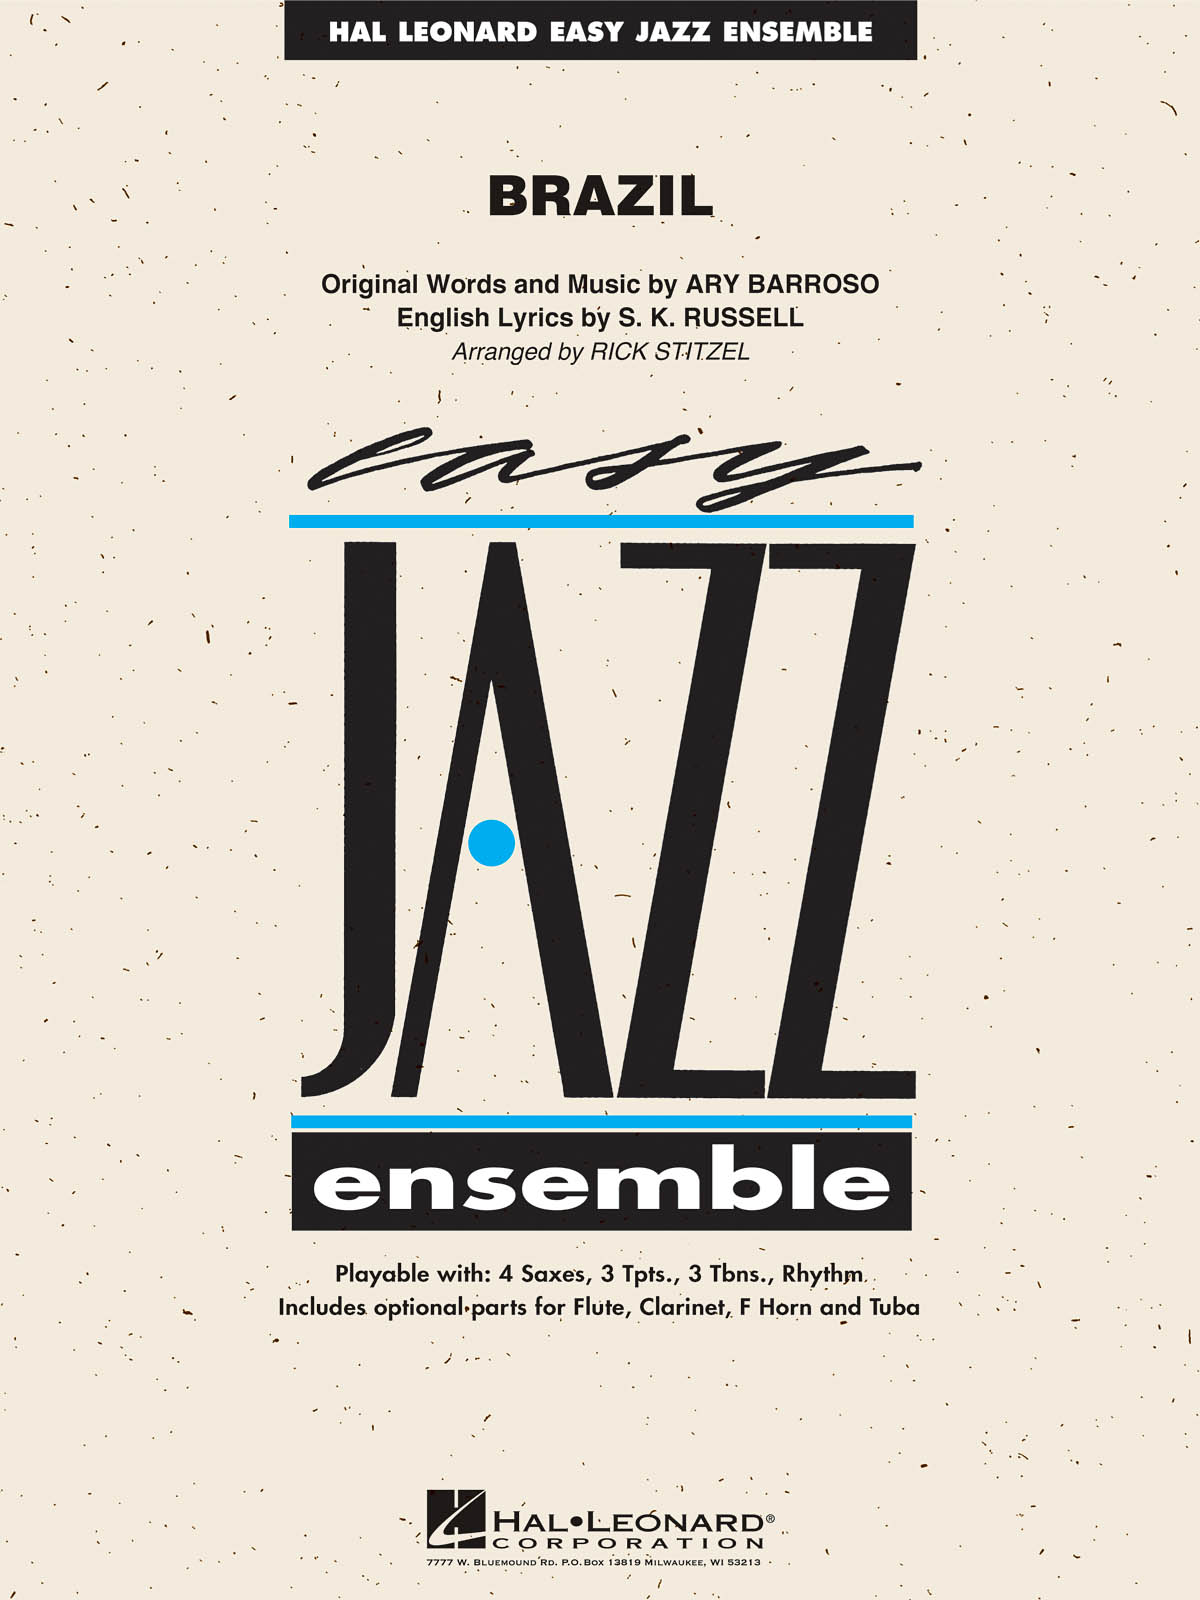 Brazil-Easy Jazz Ensemble